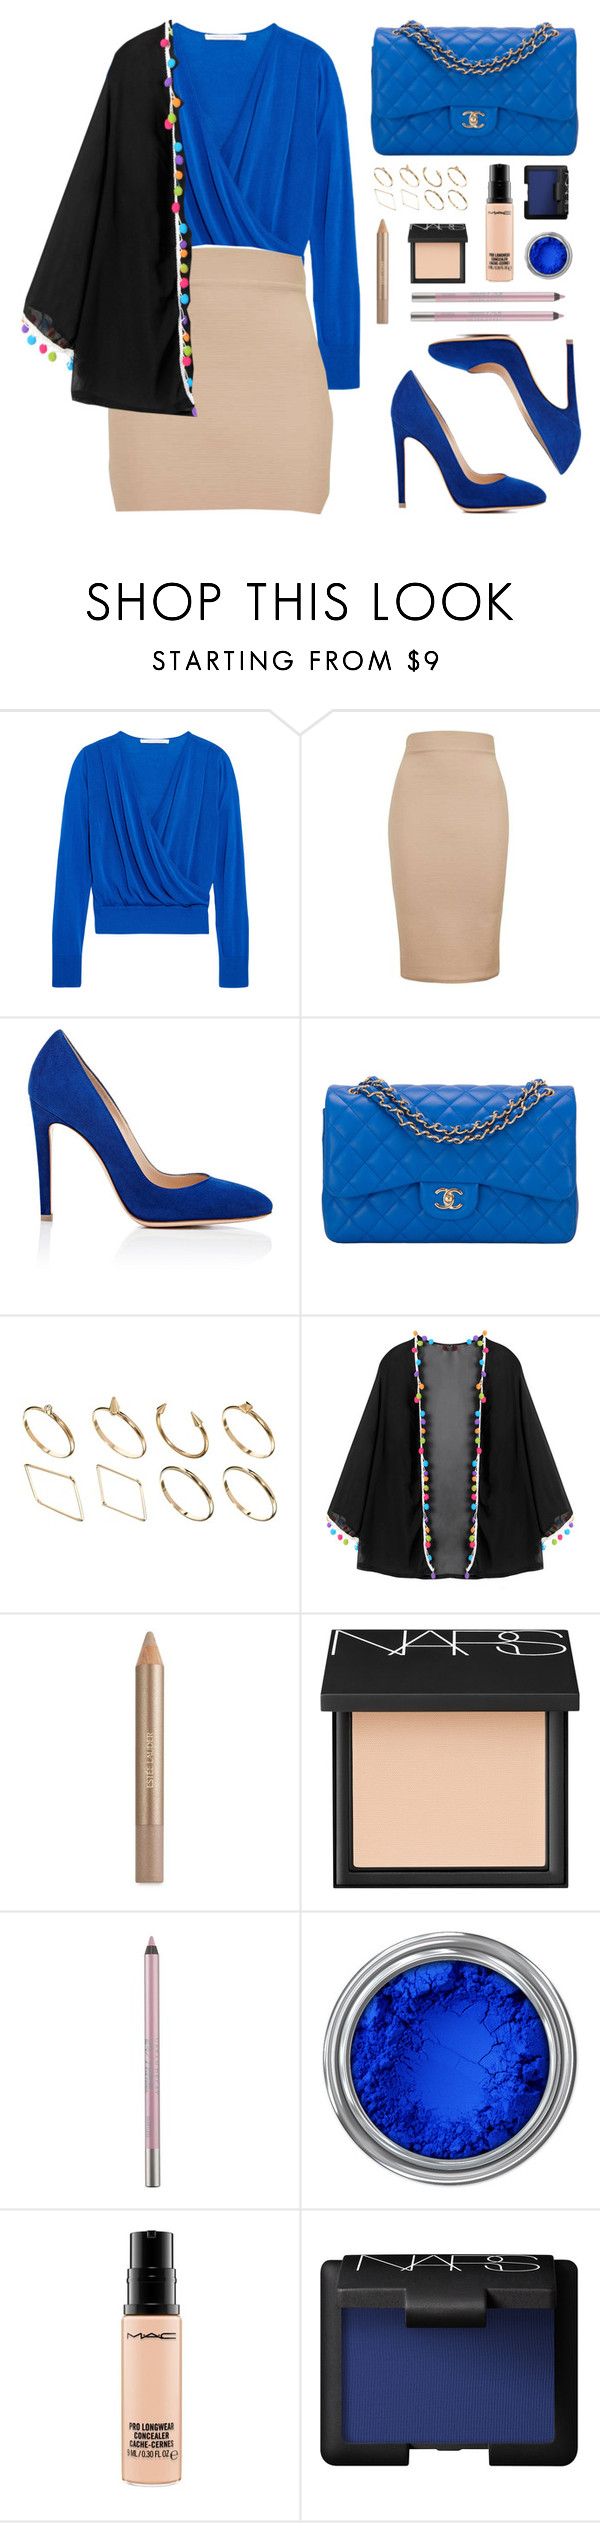 """""""Ilona"""" by toppingu ❤ liked on Polyvore featuring Diane Von Furstenberg, Topshop, Gianvito Rossi, Chanel, ASOS, Estée Lauder, NARS Cosmetics, Urban Decay and MAC Cosmetics"""